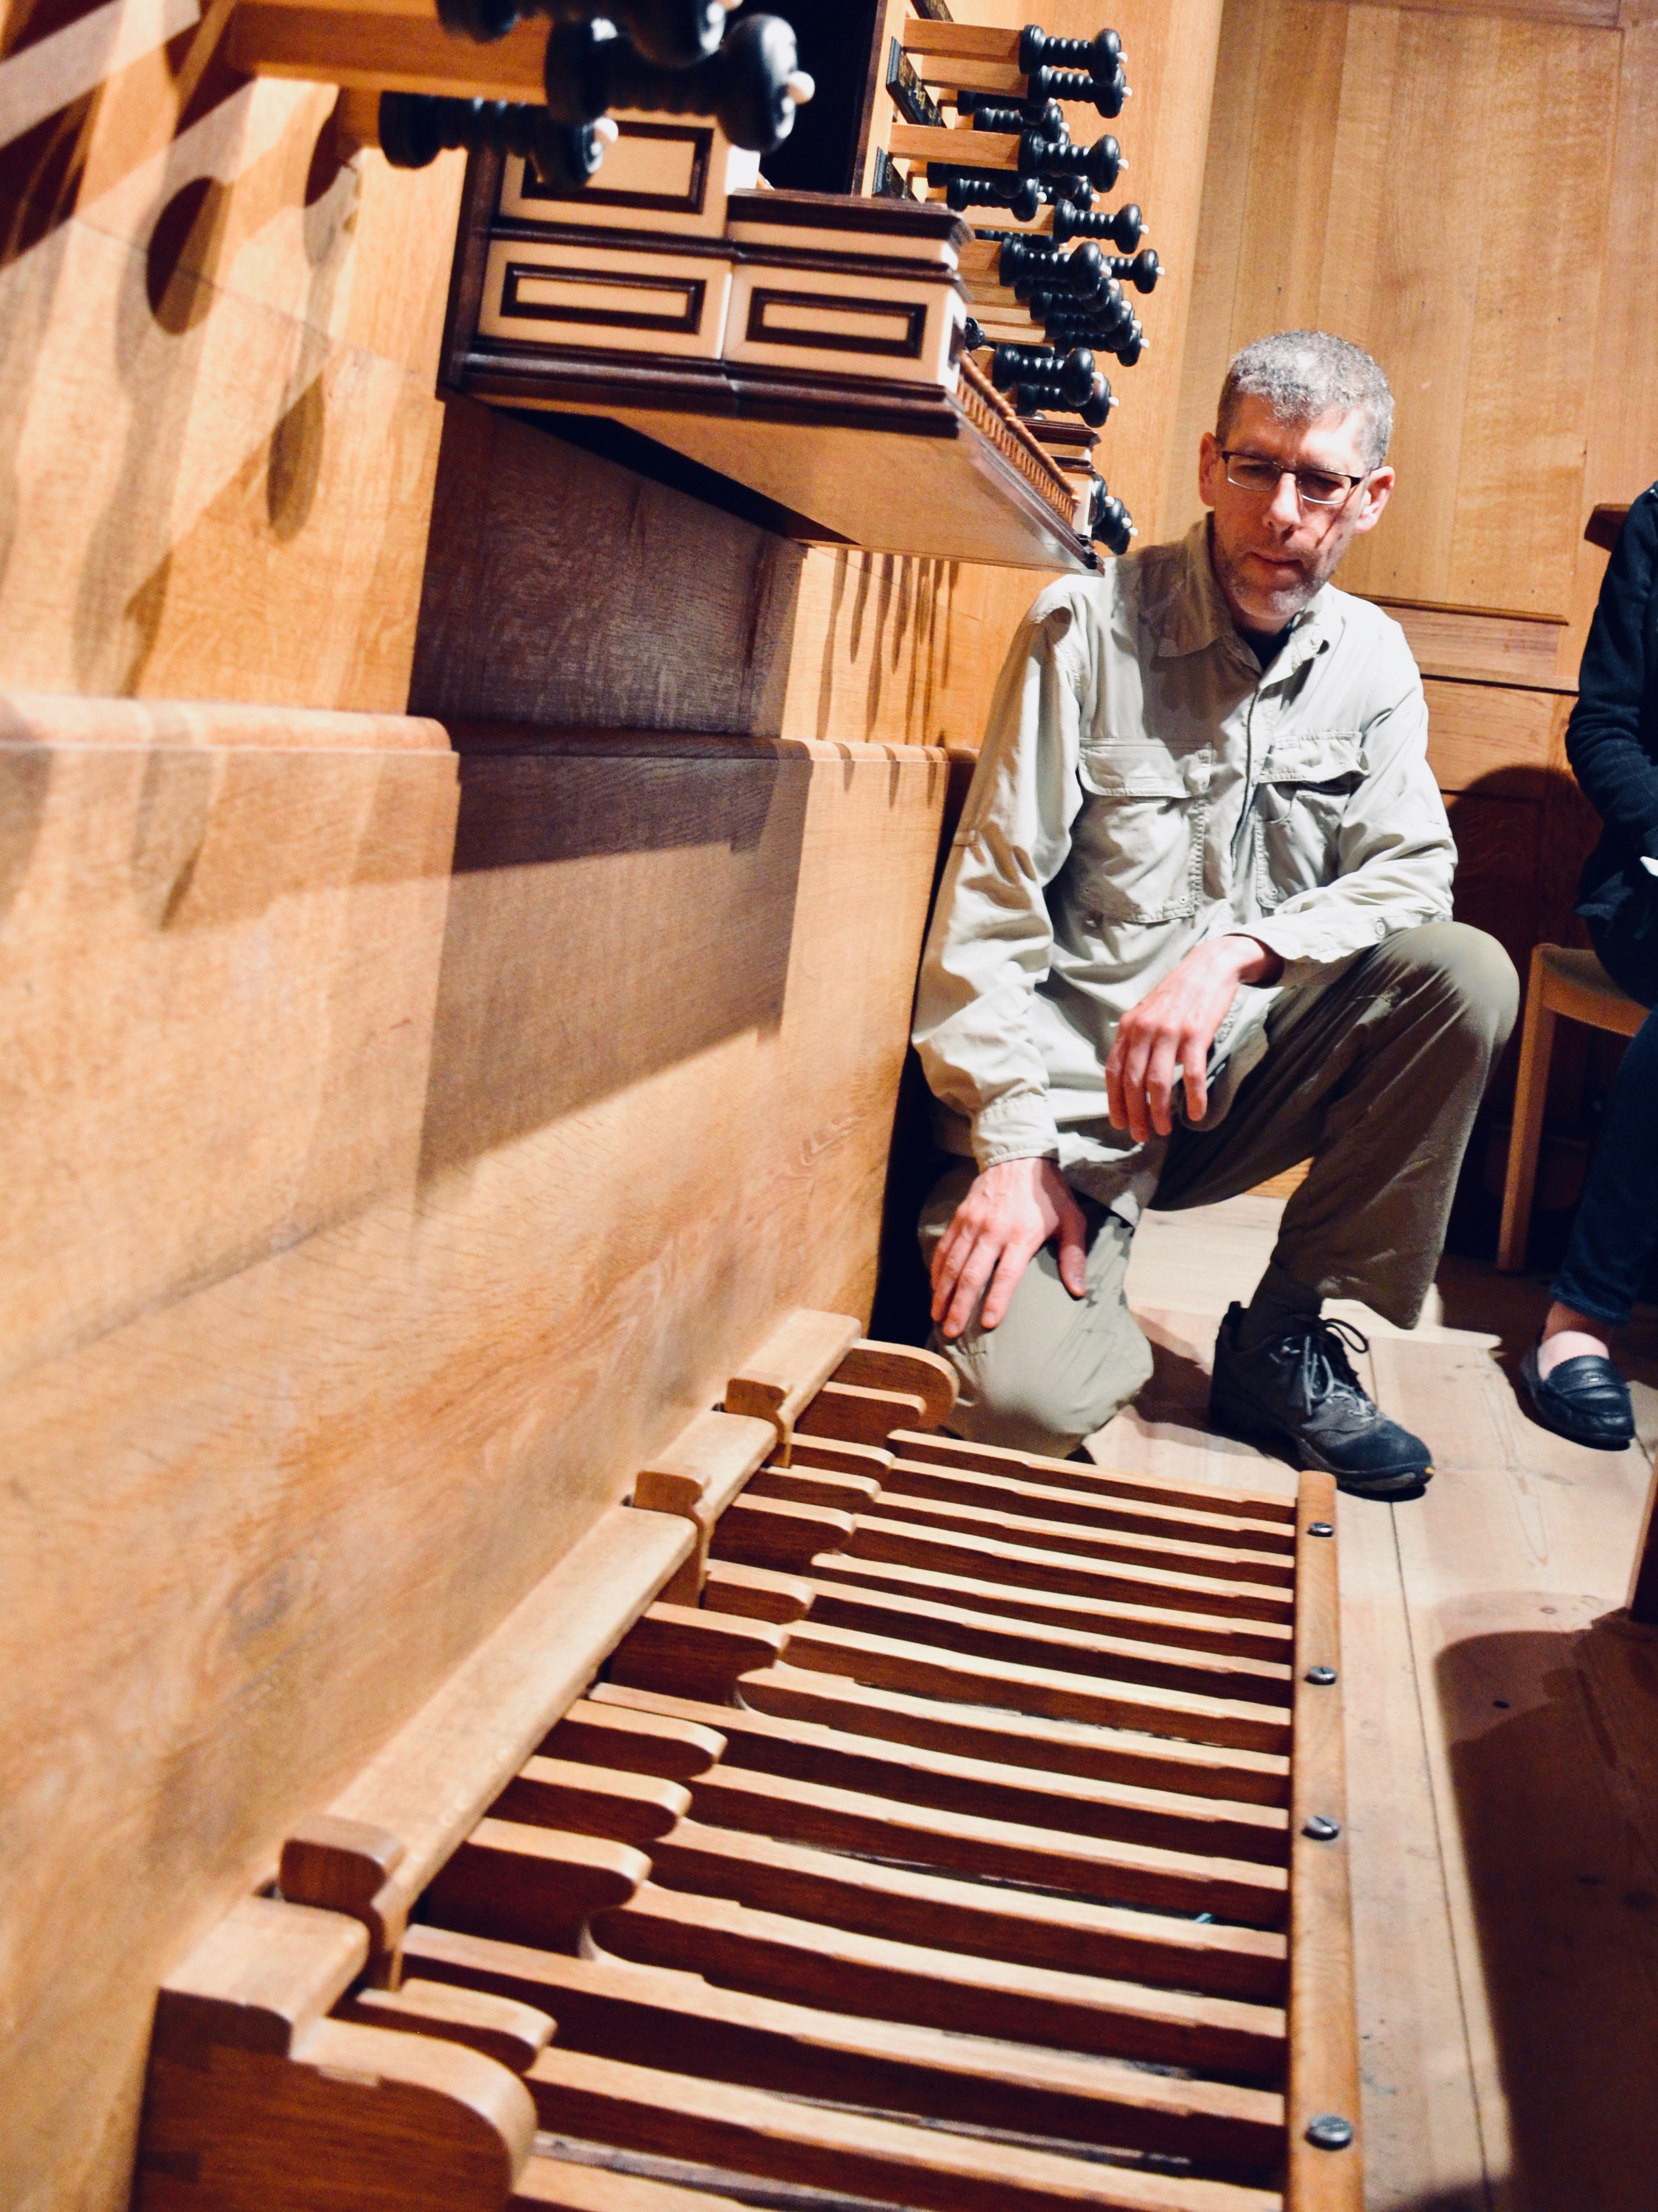 Chris Porter examines the pedal board of the 2000 GoART North German Baroque Research Organ in Örgryte New Church, Göteborg, Sweden.